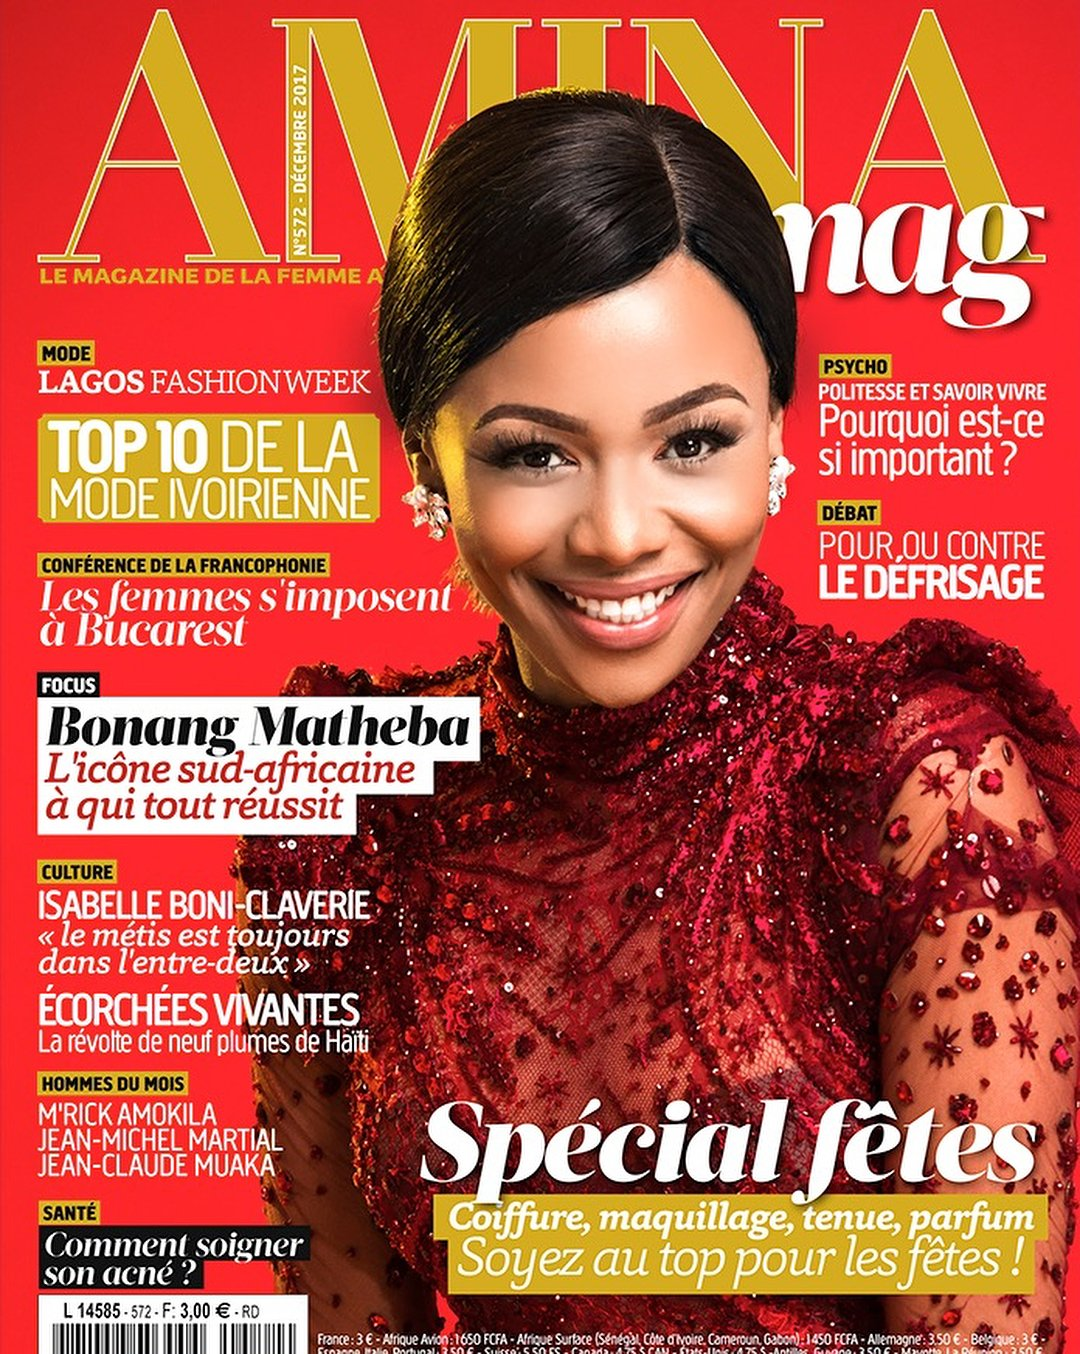 Bonang looks stunning in new magazine cover